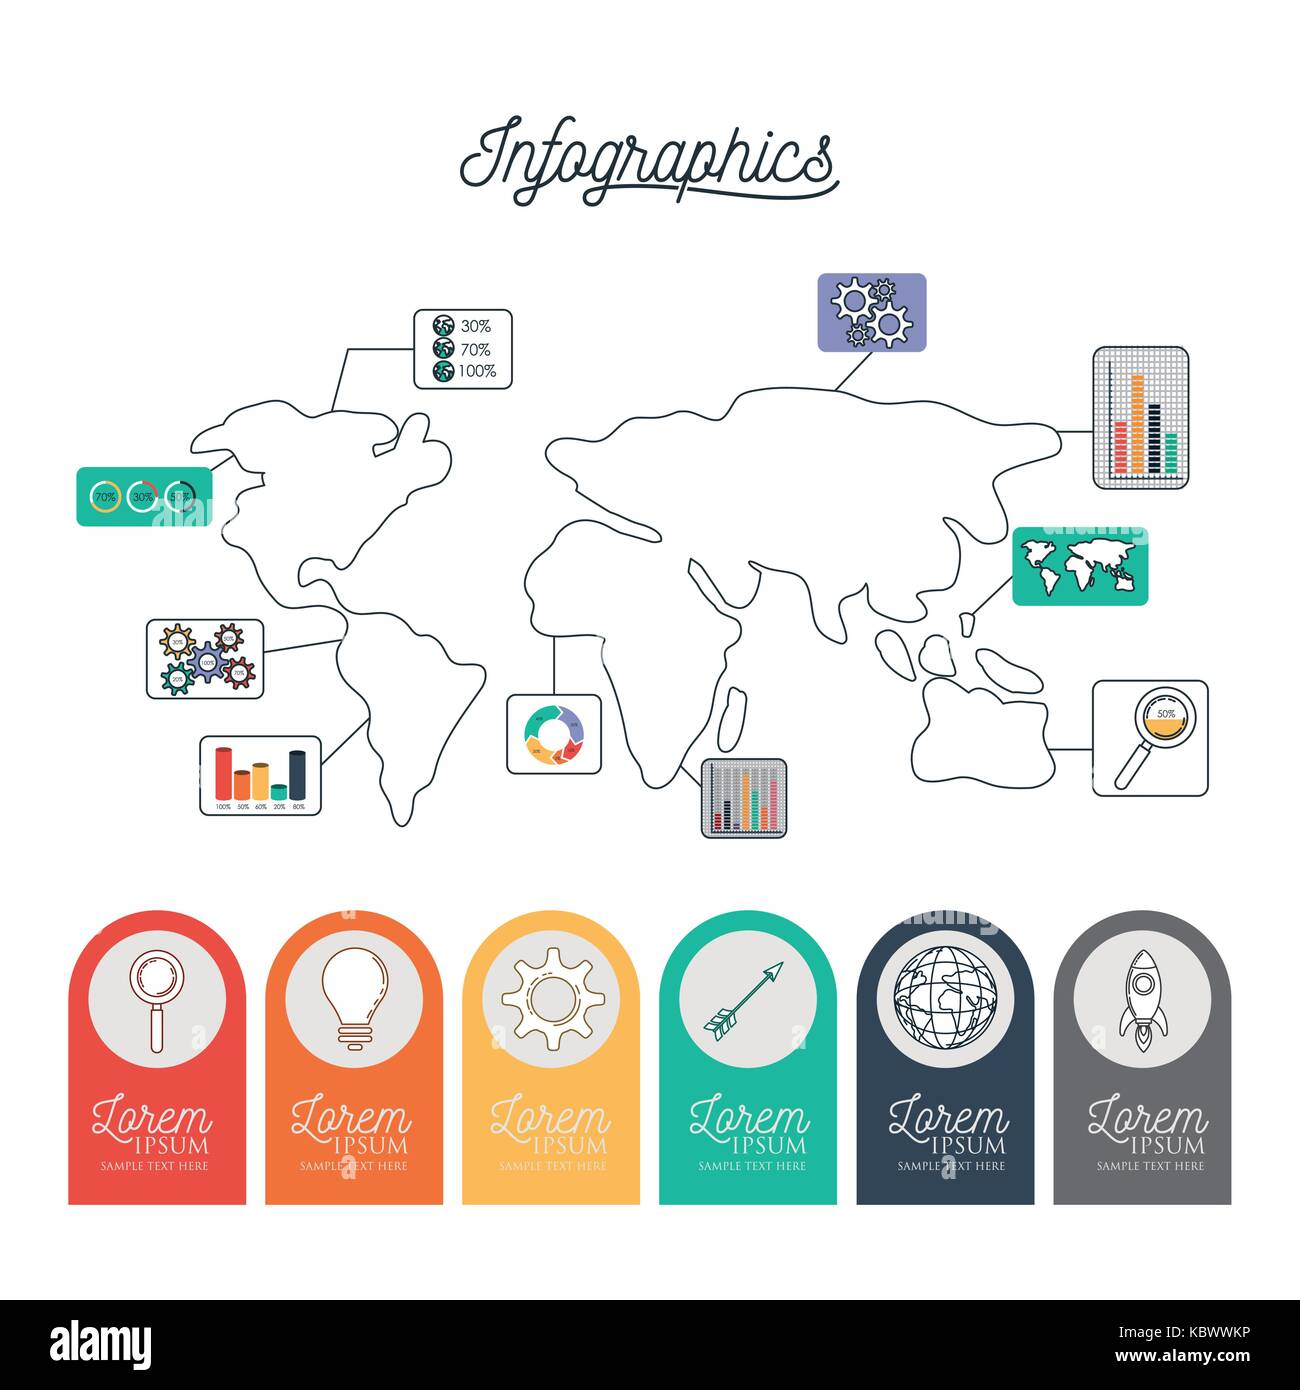 Infographic world map with labels with icons on circles on bottom infographic world map with labels with icons on circles on bottom gumiabroncs Image collections